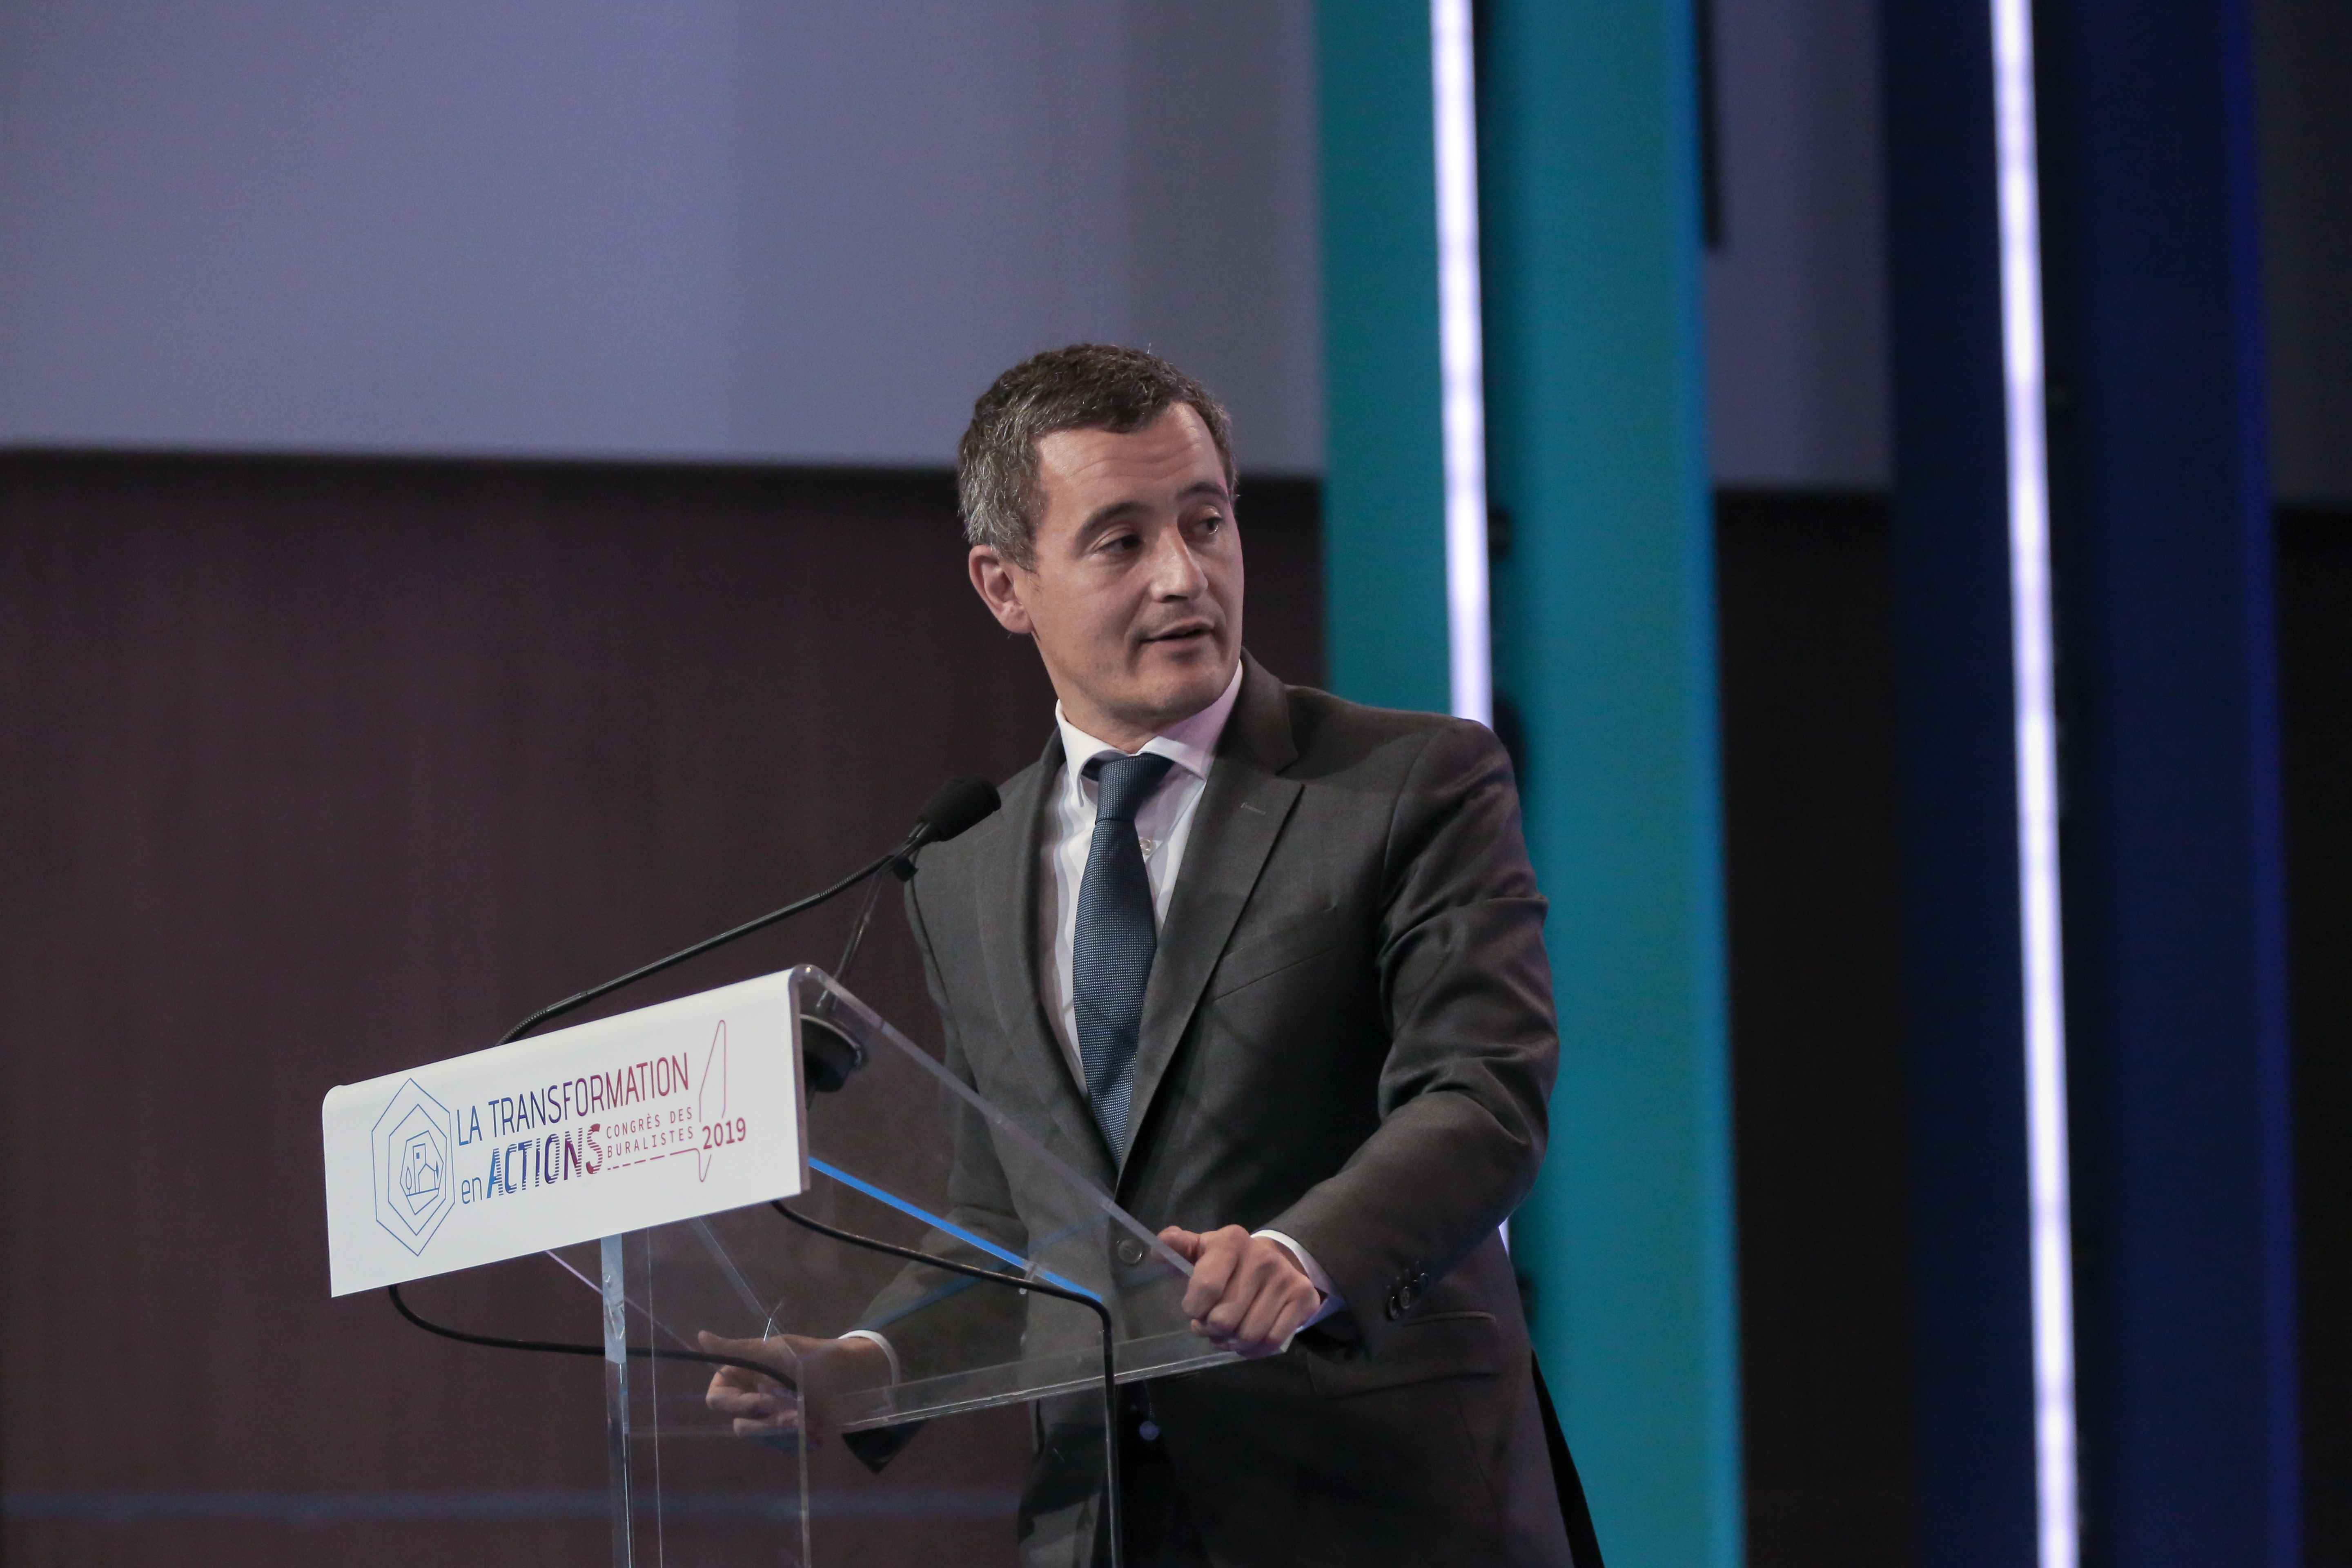 French Minister for Public Action and Accounts Gerald Darmanin adresses tobacconists  during the Congress of the National Tobacconists Confederation in Paris, on October 10, 2019. In the last few years, the increase in the price of tobacco has been devasta